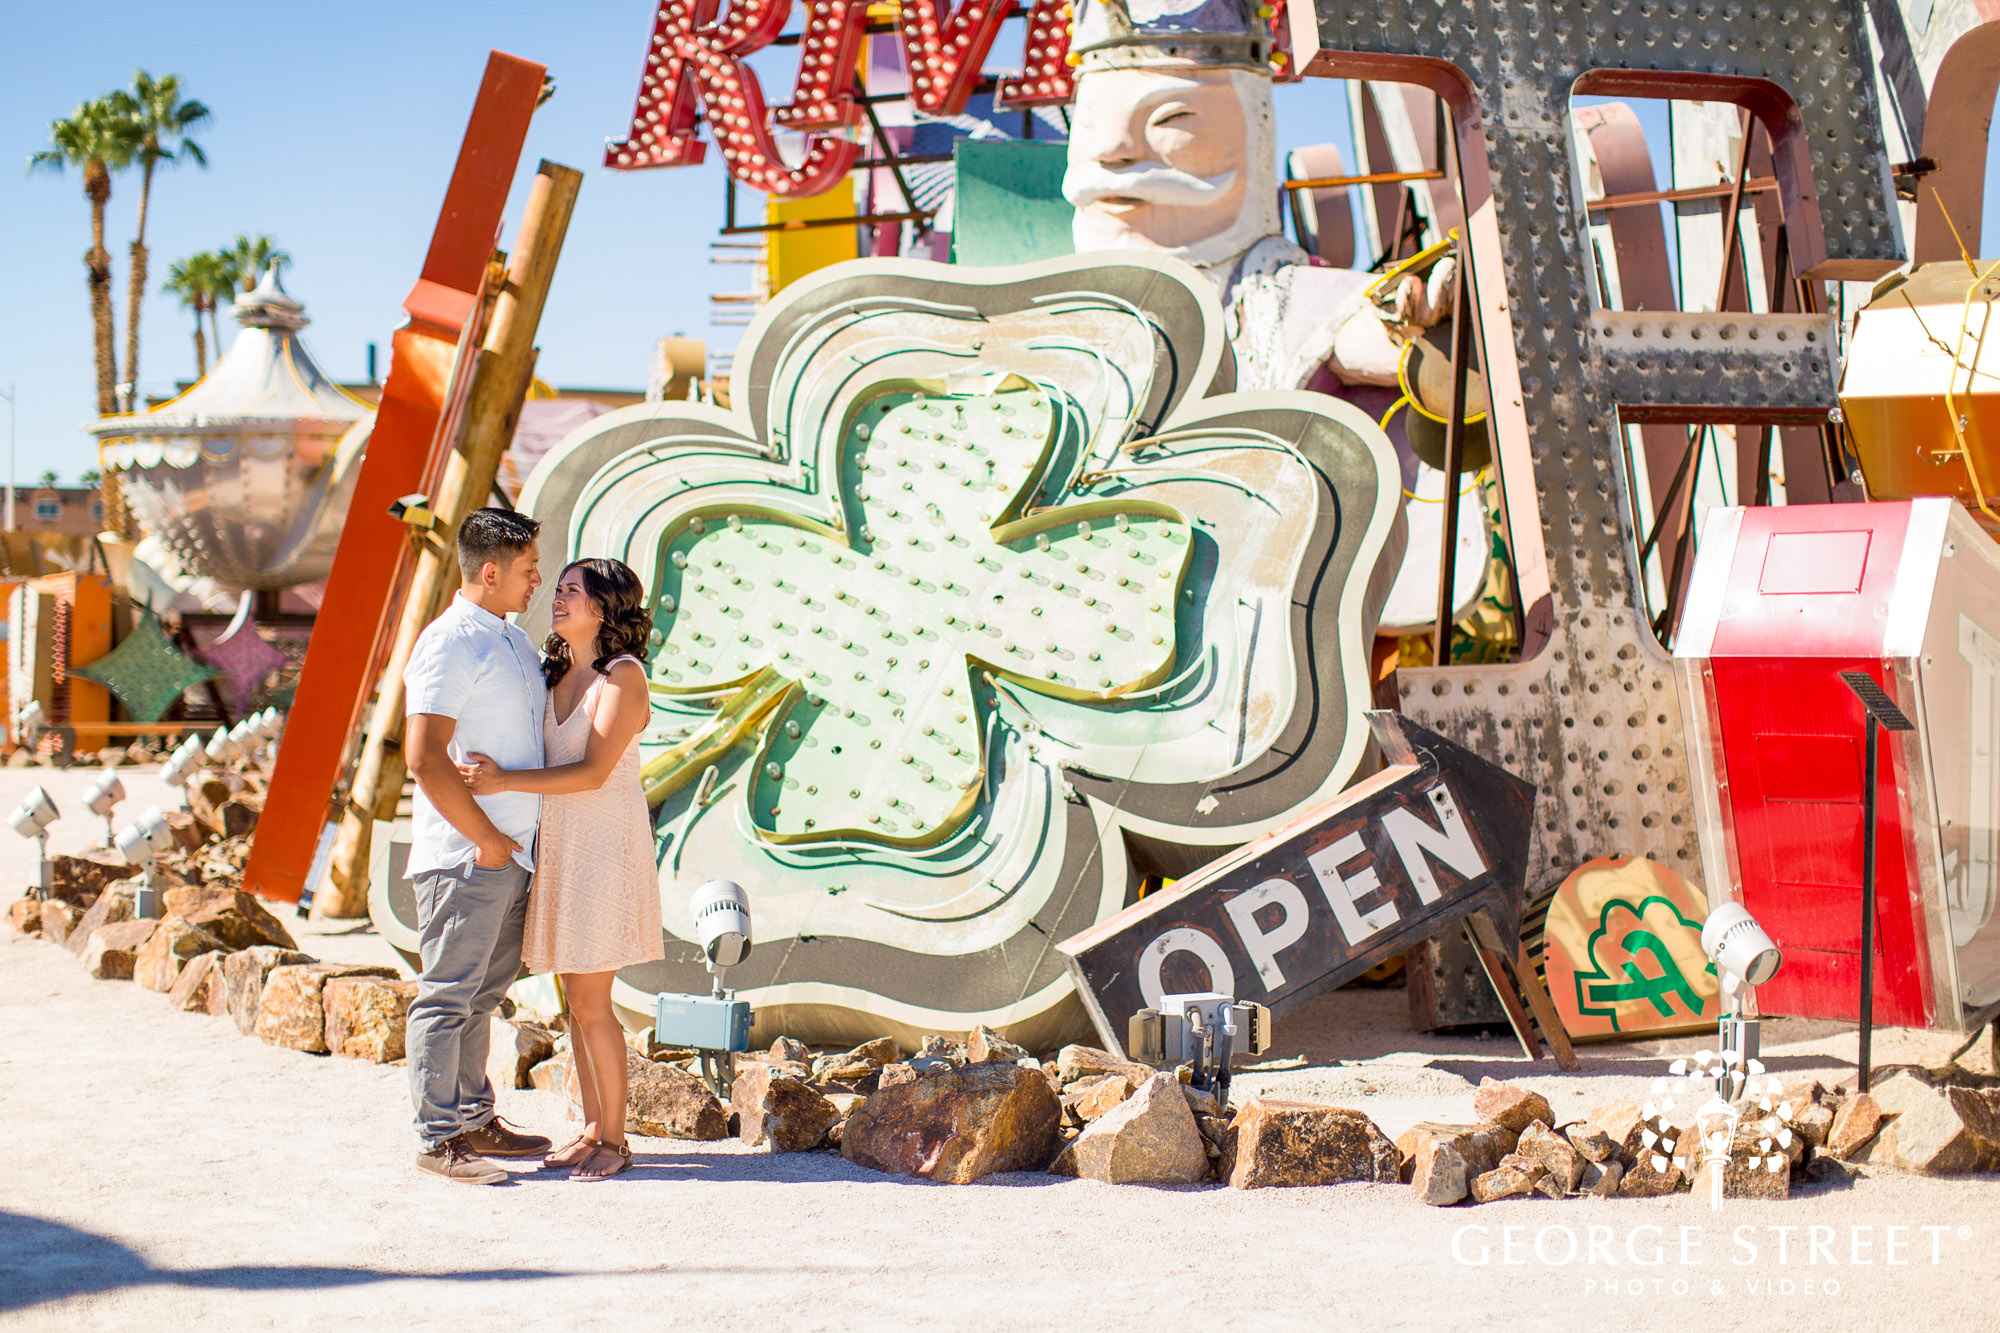 las vegas neon signs engagement photography 8